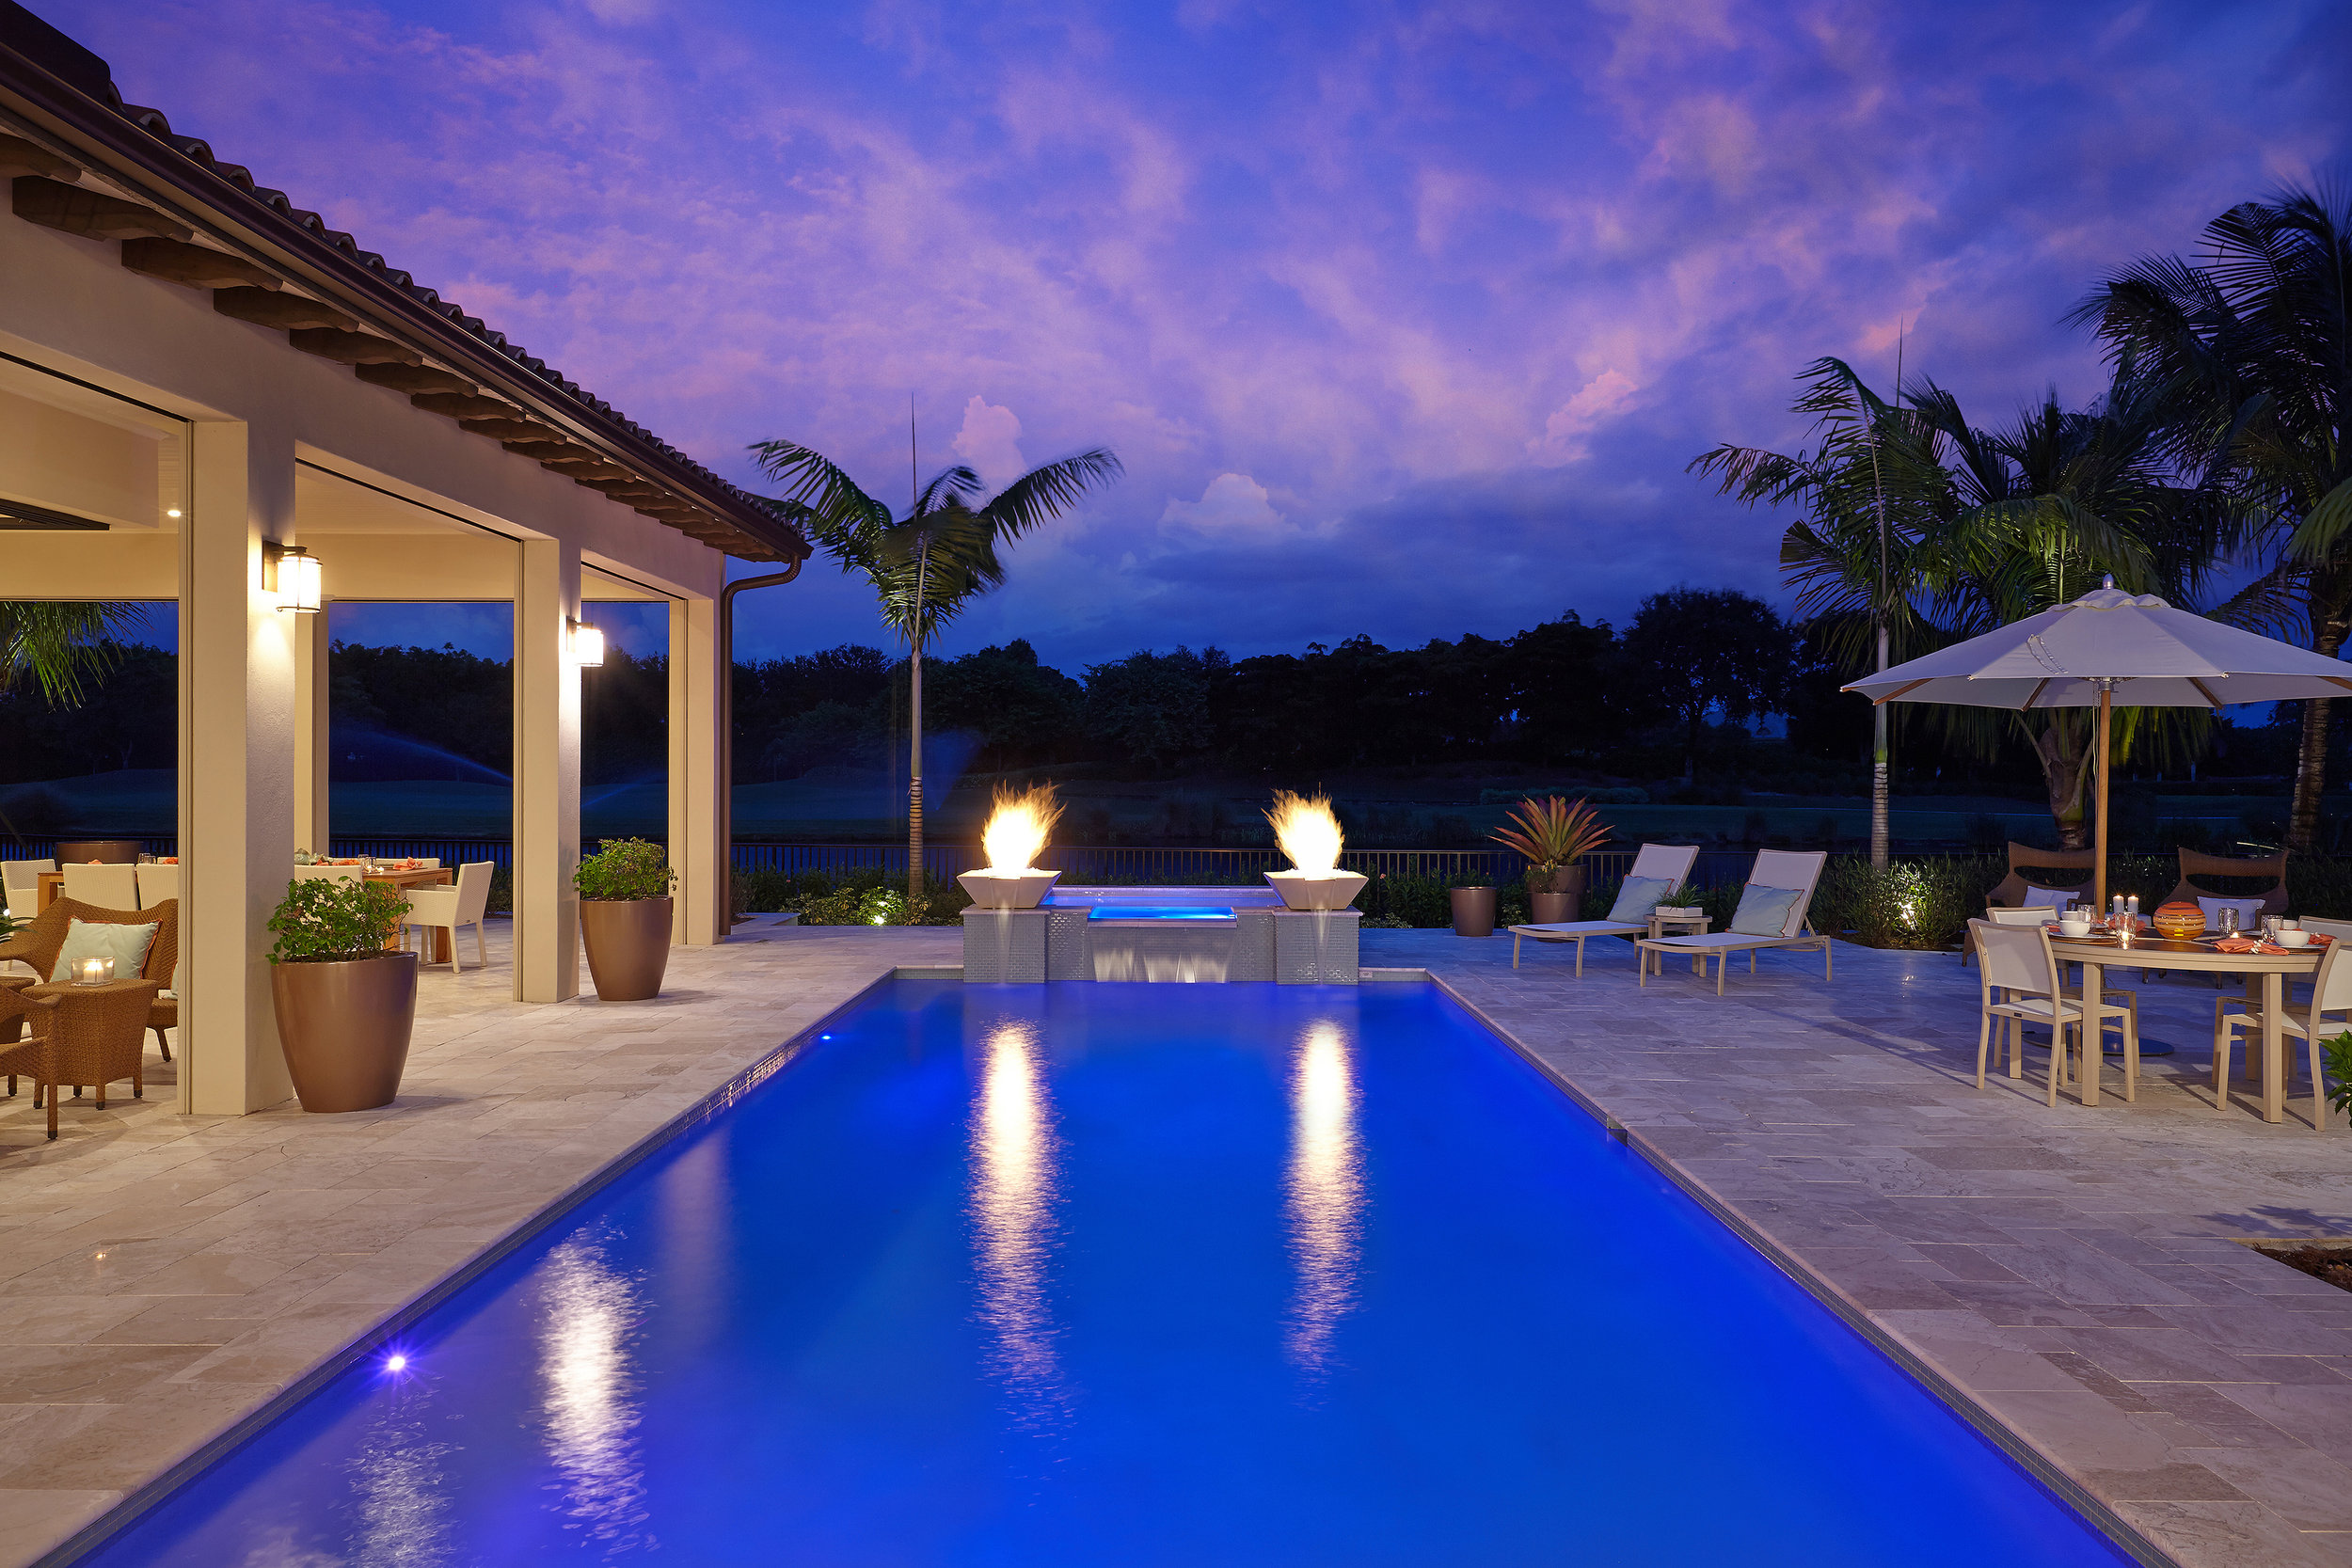 TROPICAL_RETREAT_EXTERIOR_POOL.jpg